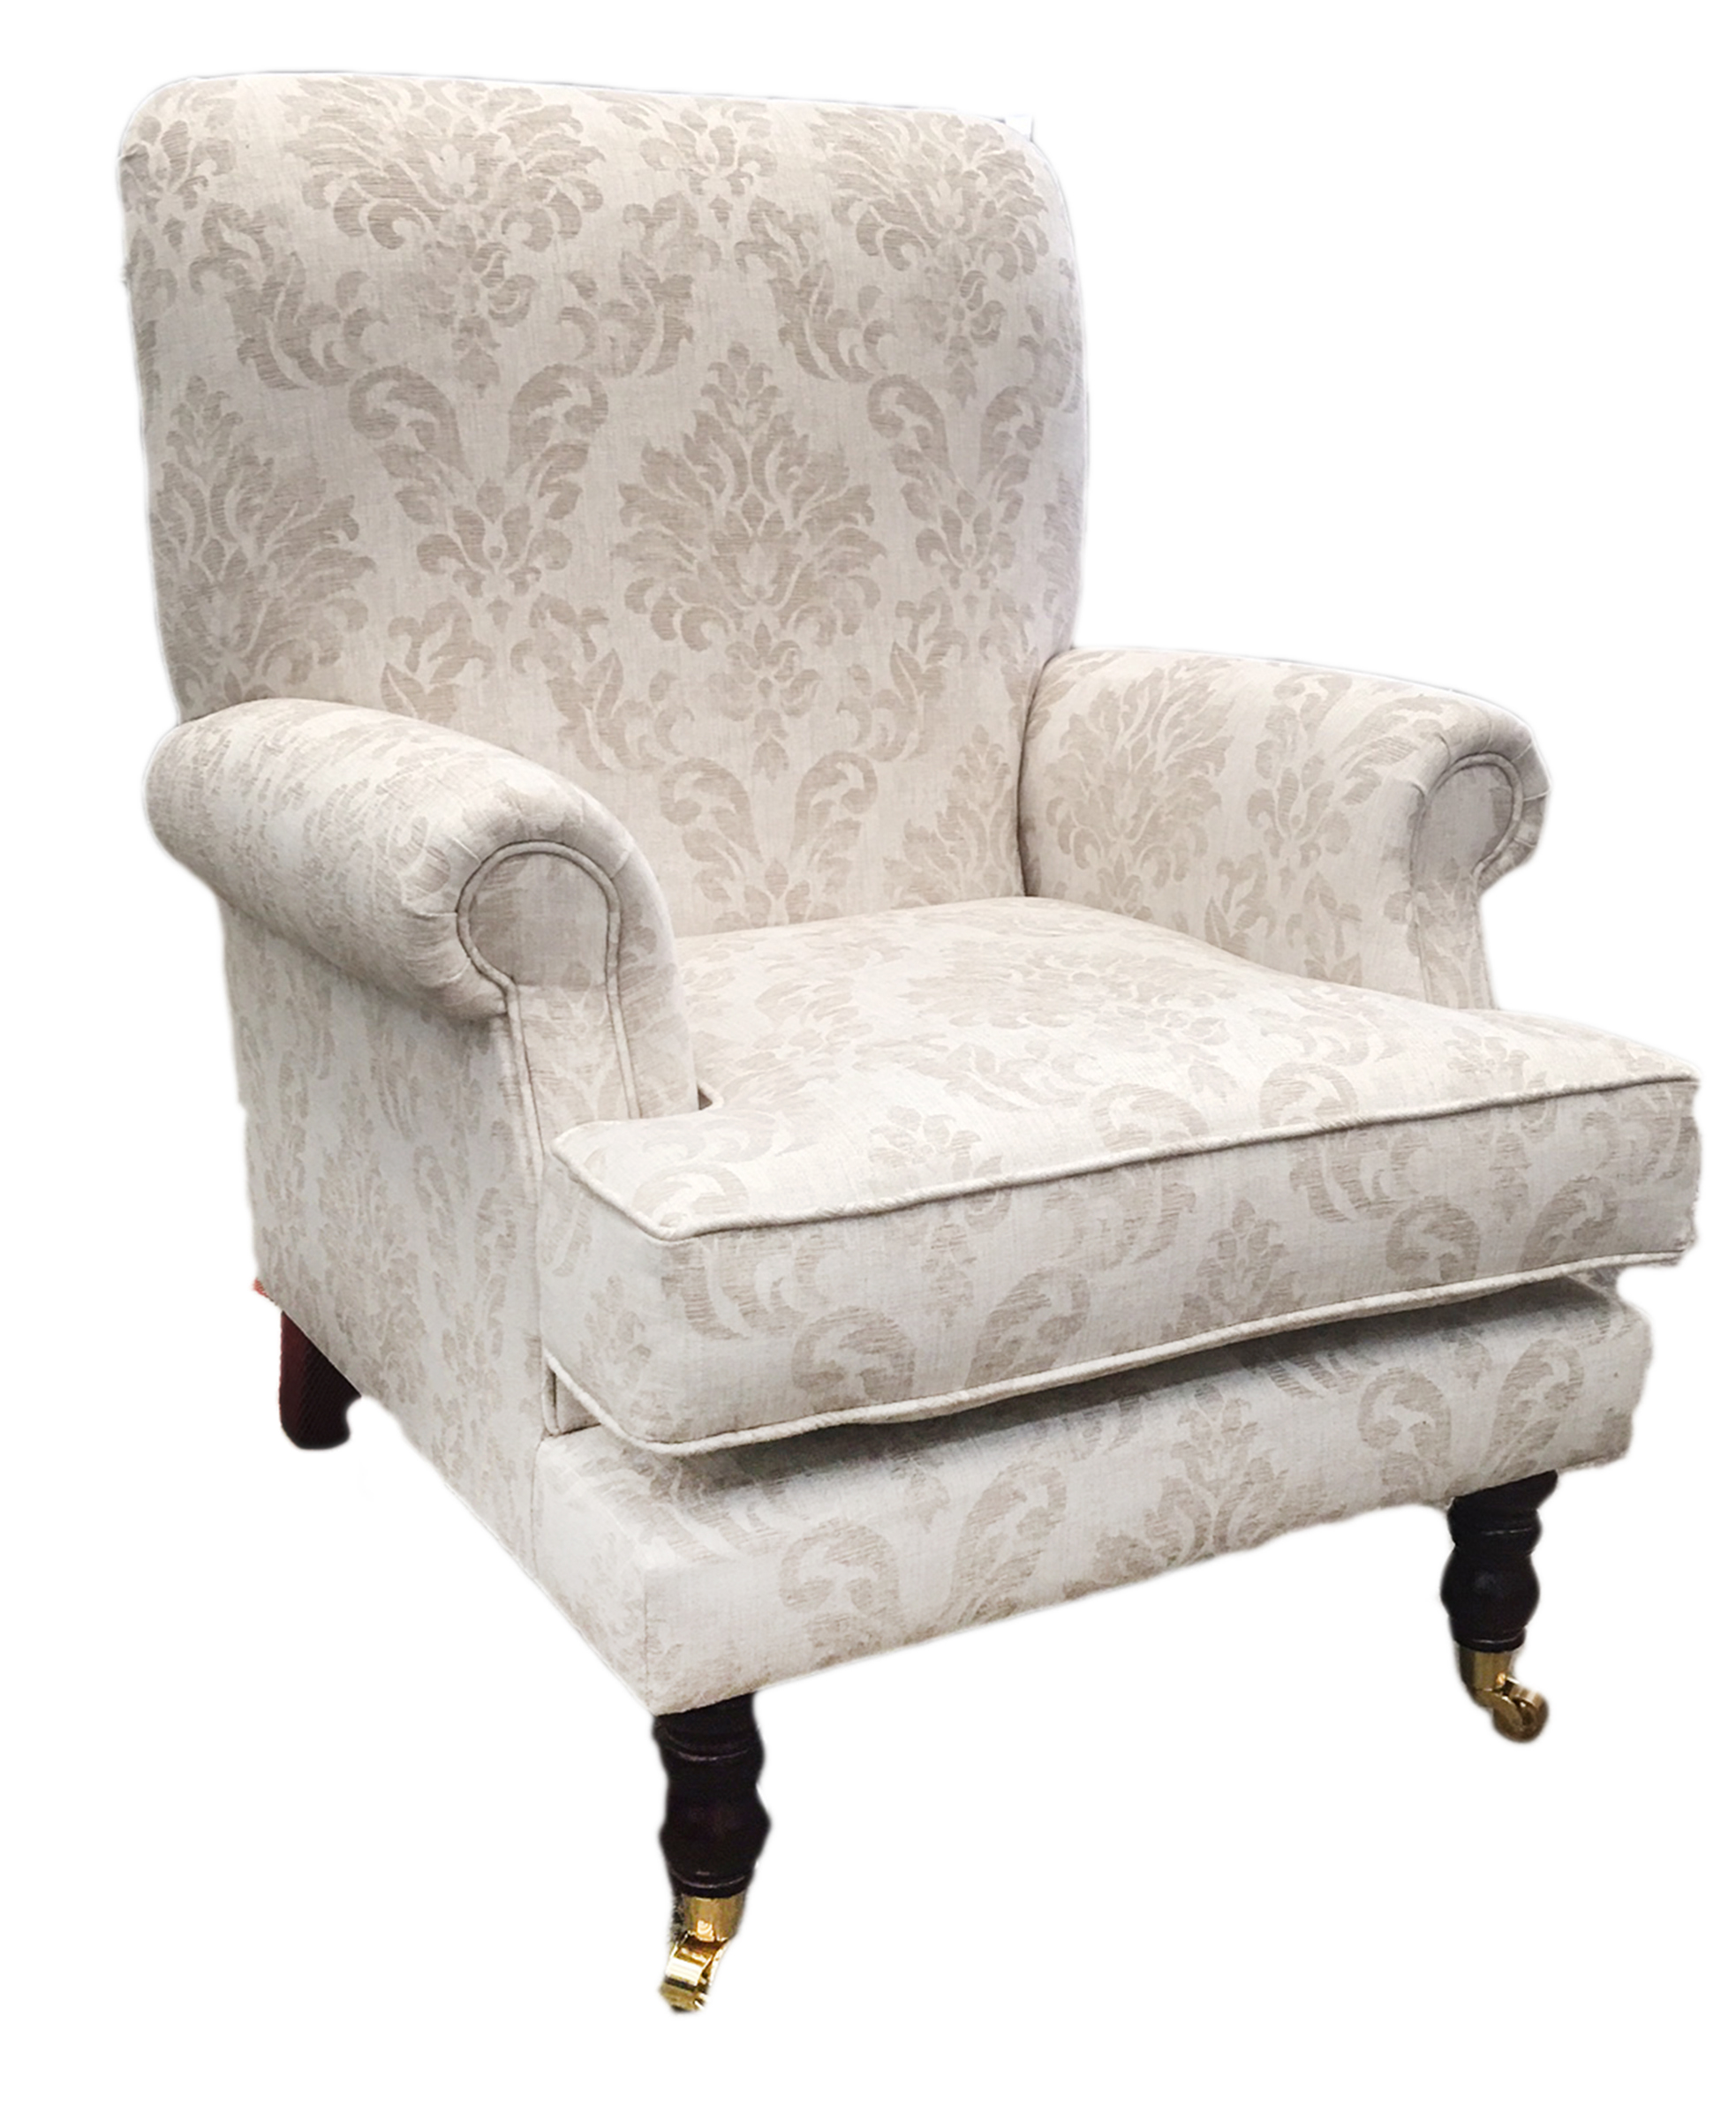 cleary-chair-in-dagano-pattern-linen-side